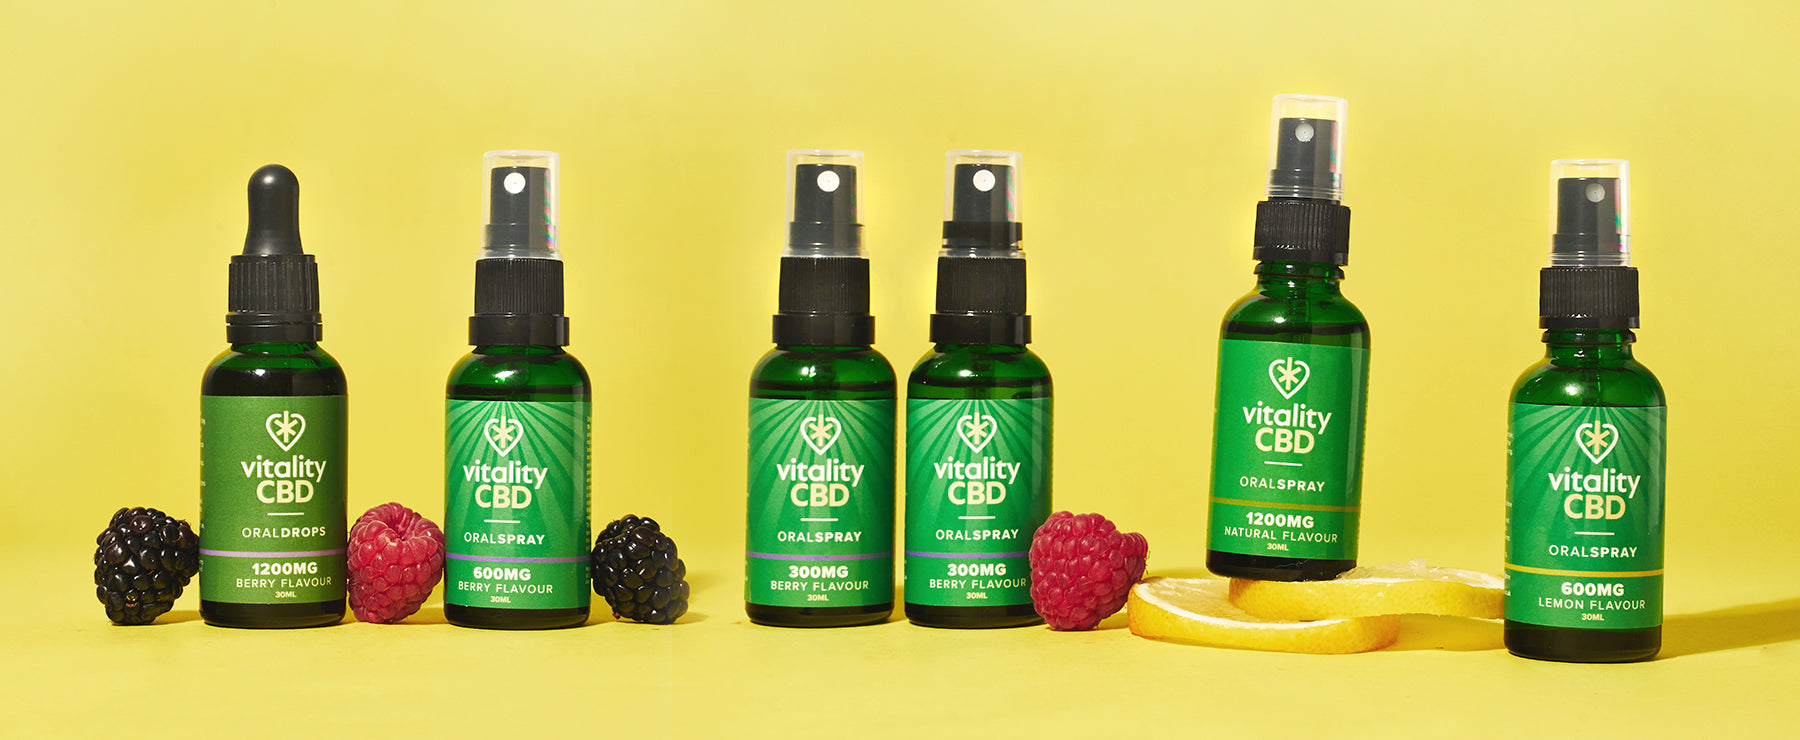 Best CBD oils